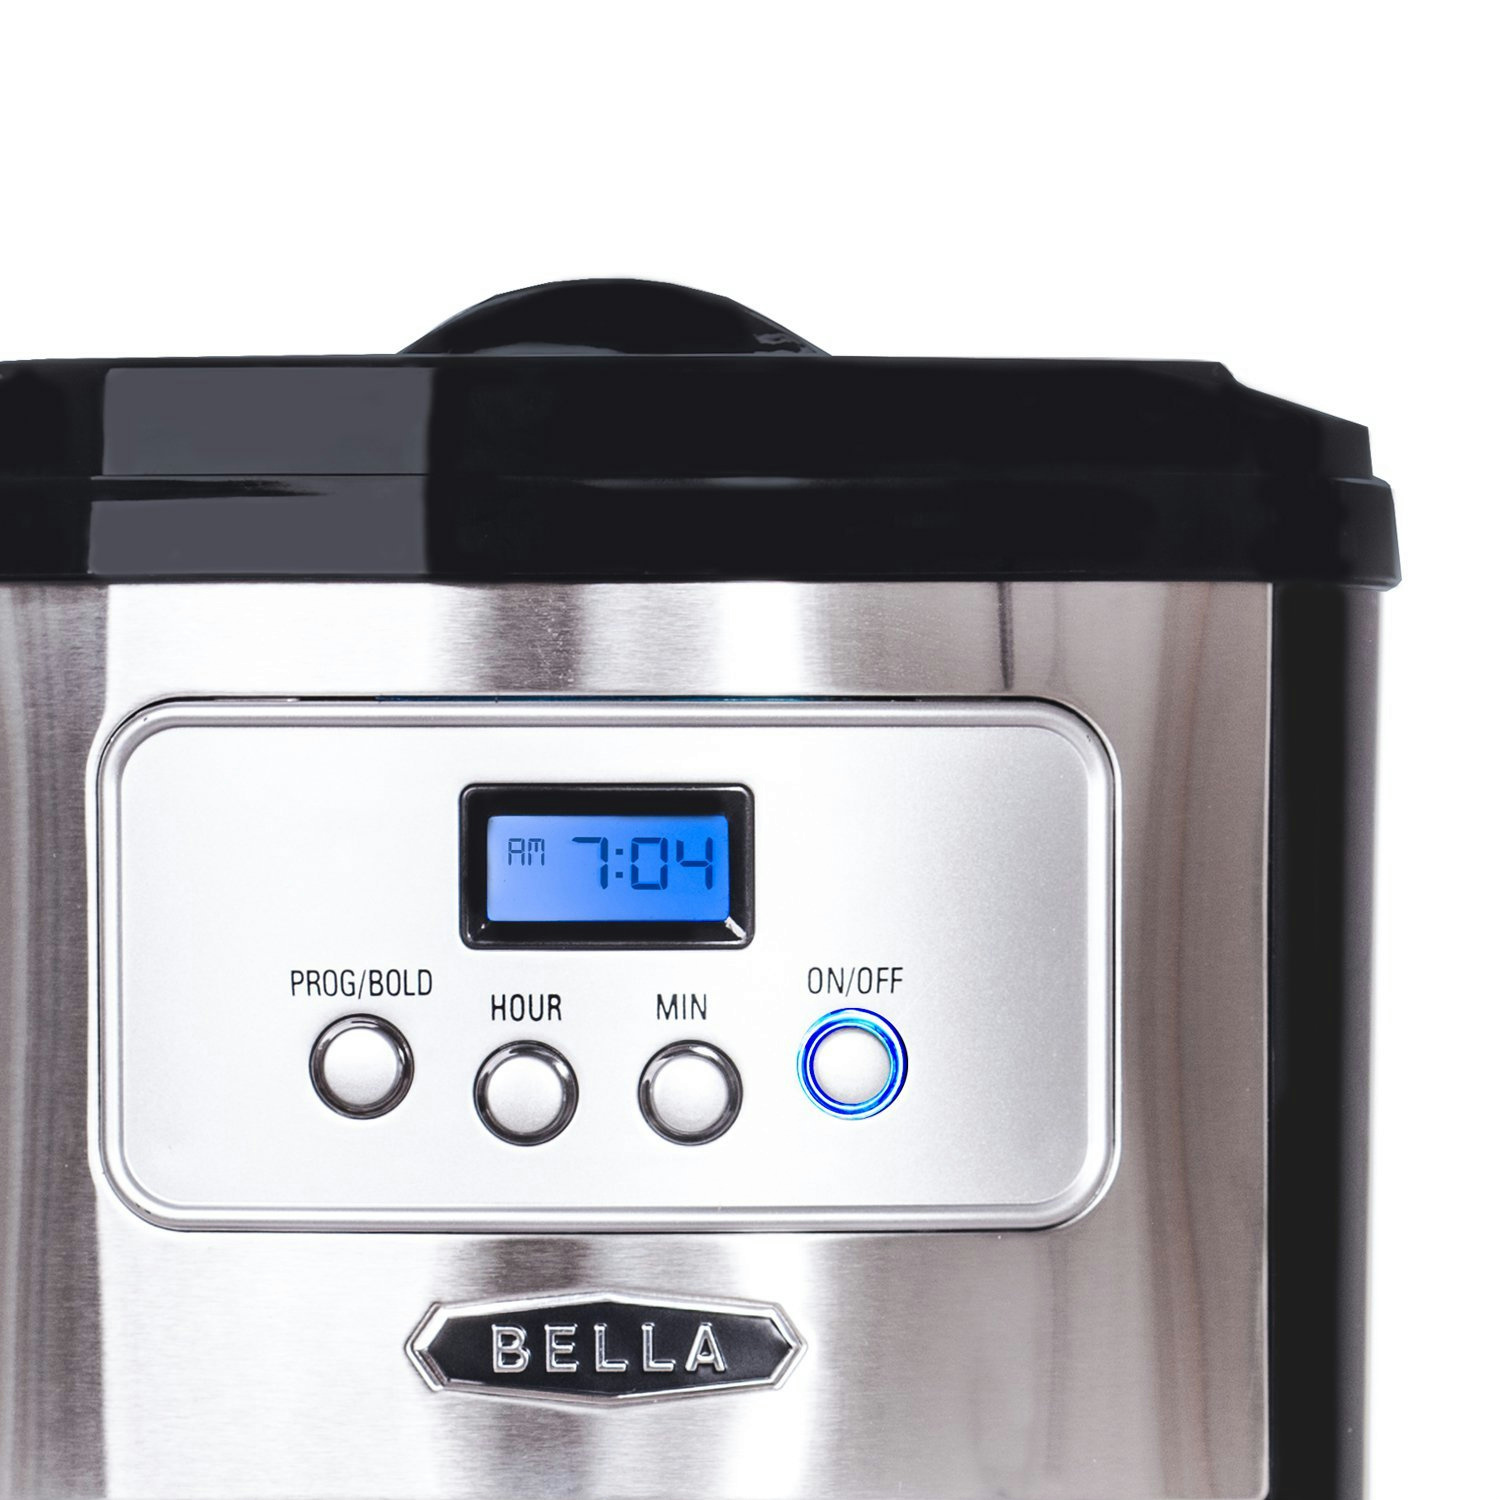 Bella Coffee Maker Auto Shut Off : NEW Bella 10 Cup Thermal Programmable Coffee Maker Reusable Filter Basket